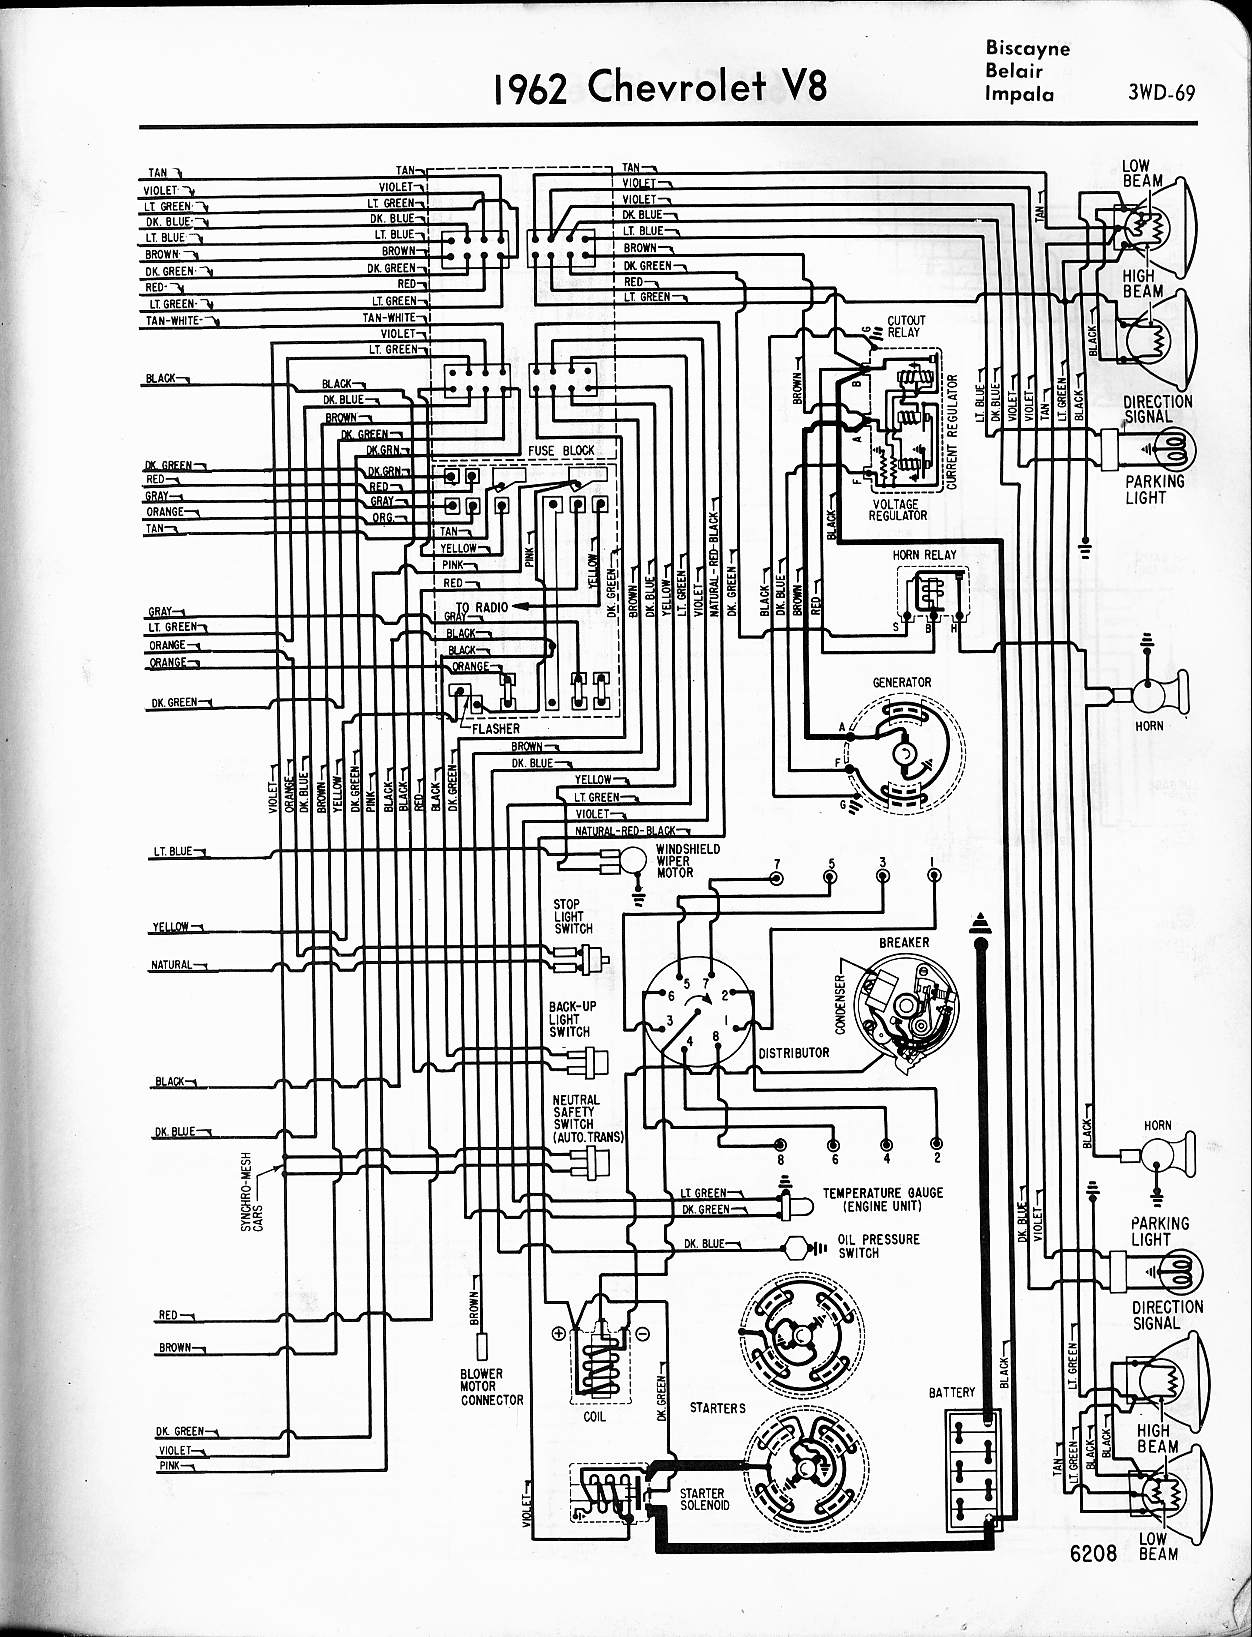 2005 chevy impala ignition switch wiring diagram 2005 impala ignition switch wiring diagram #4